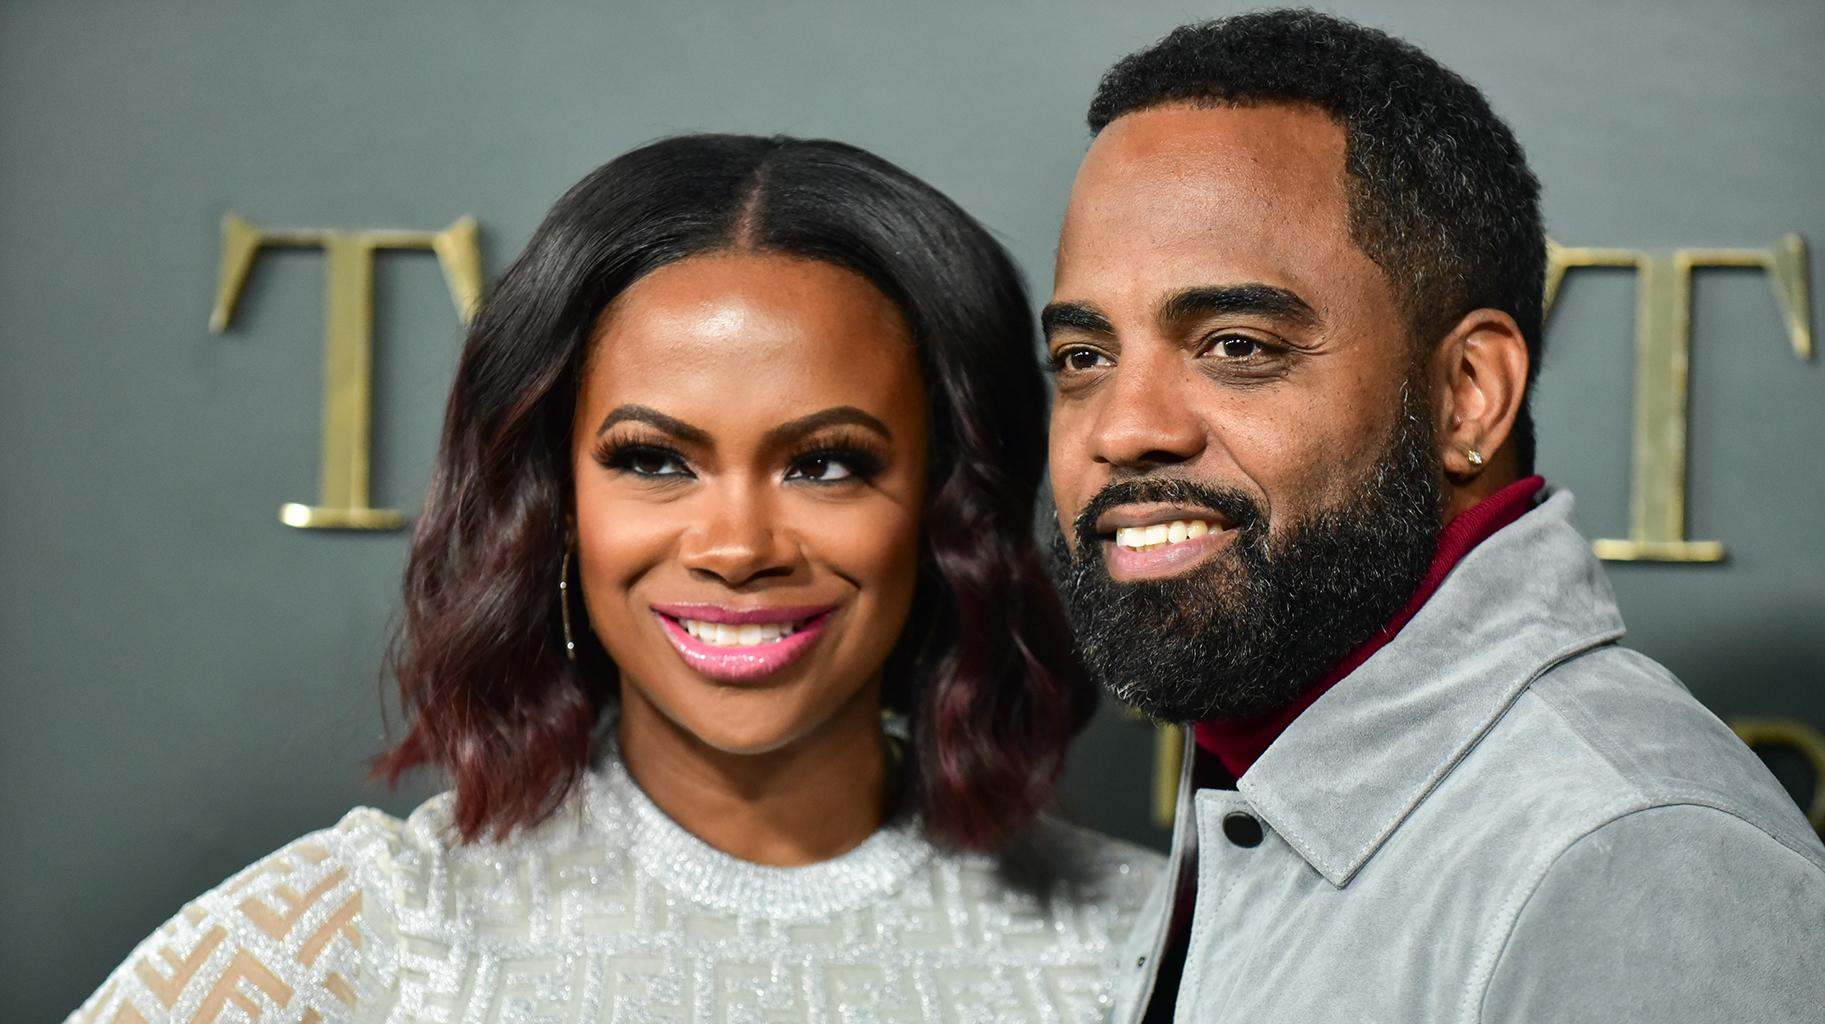 Kandi Burruss And Todd Tucker Keep The Convo Of Race & Equality Going - See The Video